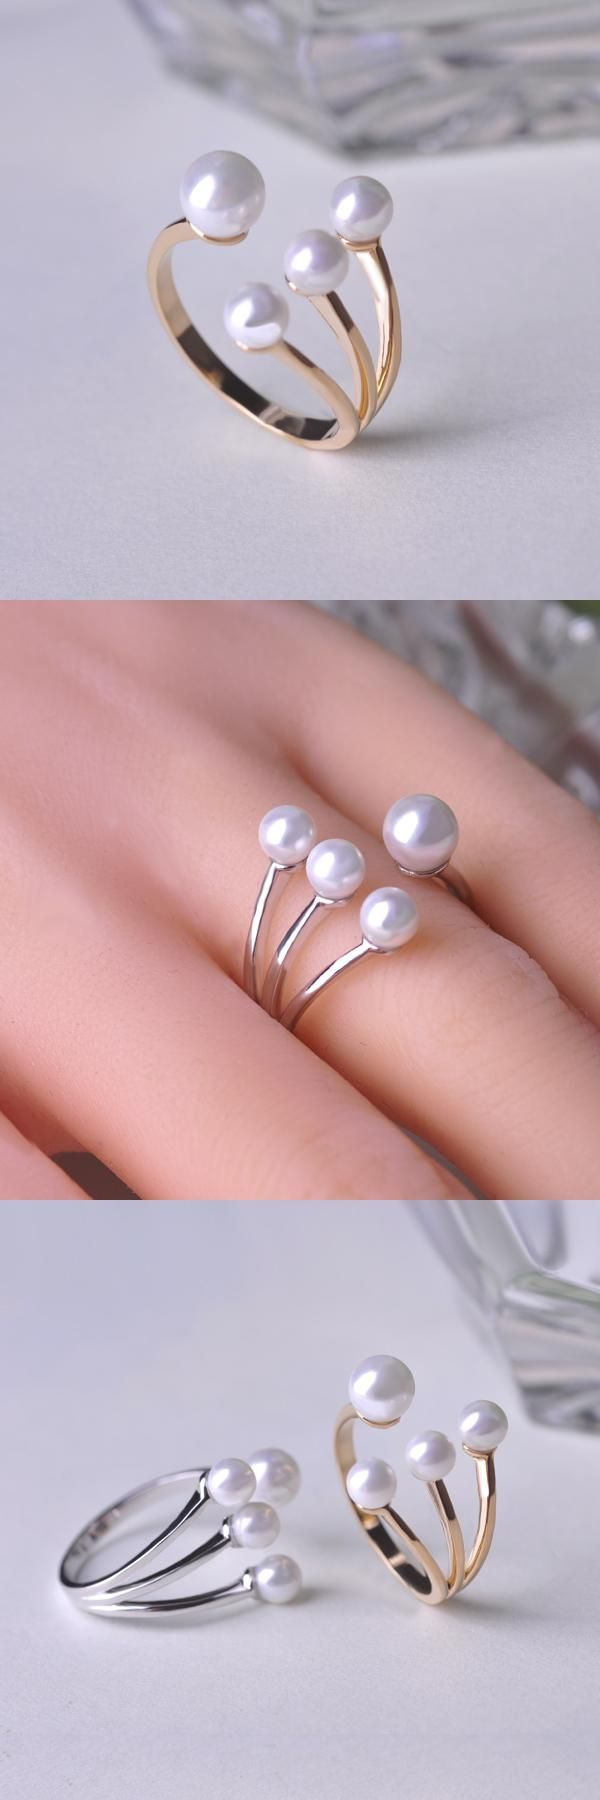 [Visit to Buy] 2015 Irregular Couple Rings Adjustable Claws Pearl Rings Anel Aneis  Anillos Masculinos Bague Femme Party Accessories joias #Advertisement